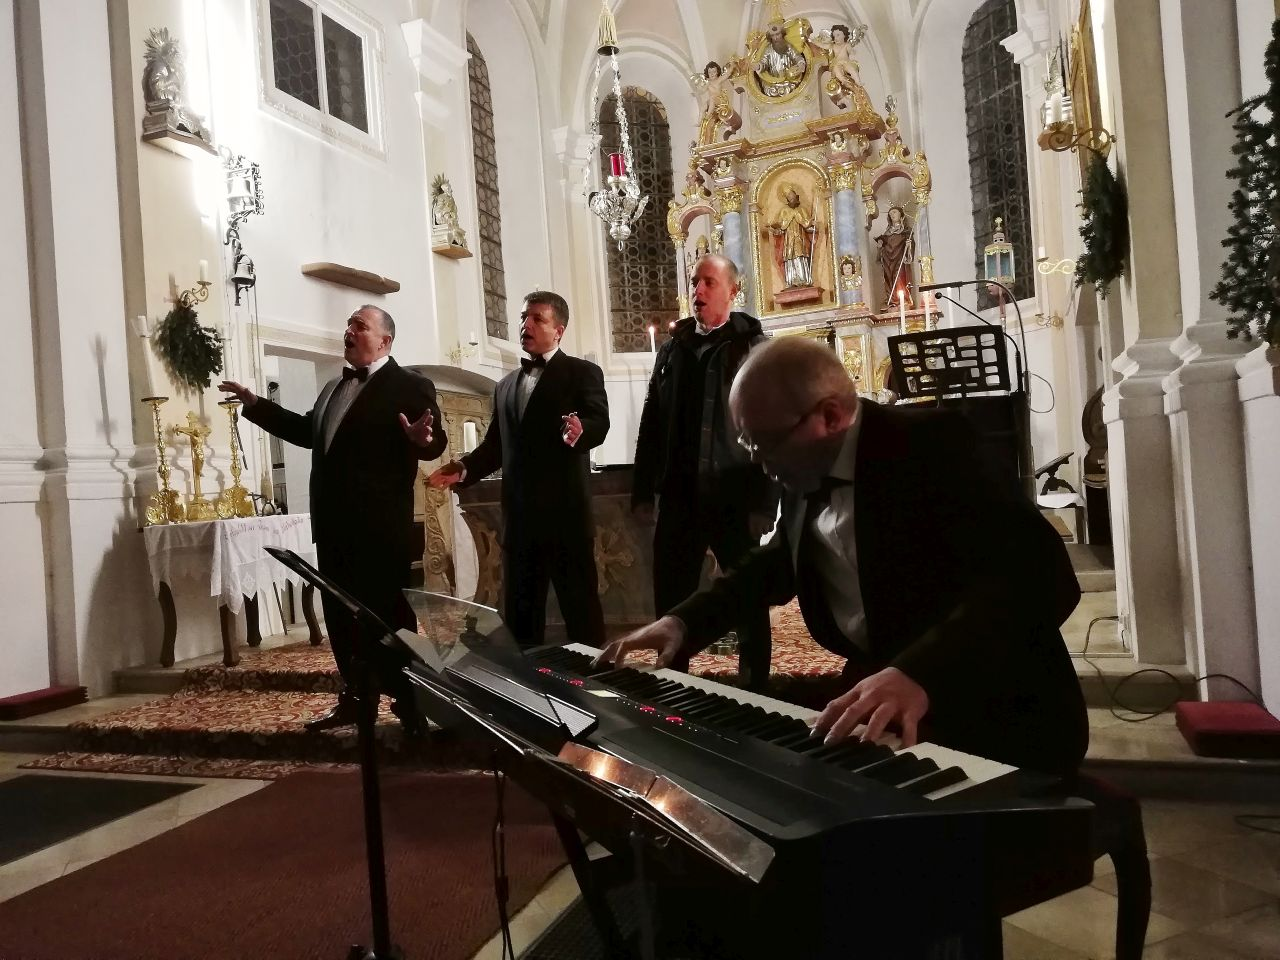 Peter's Quartett in Niklasreuth